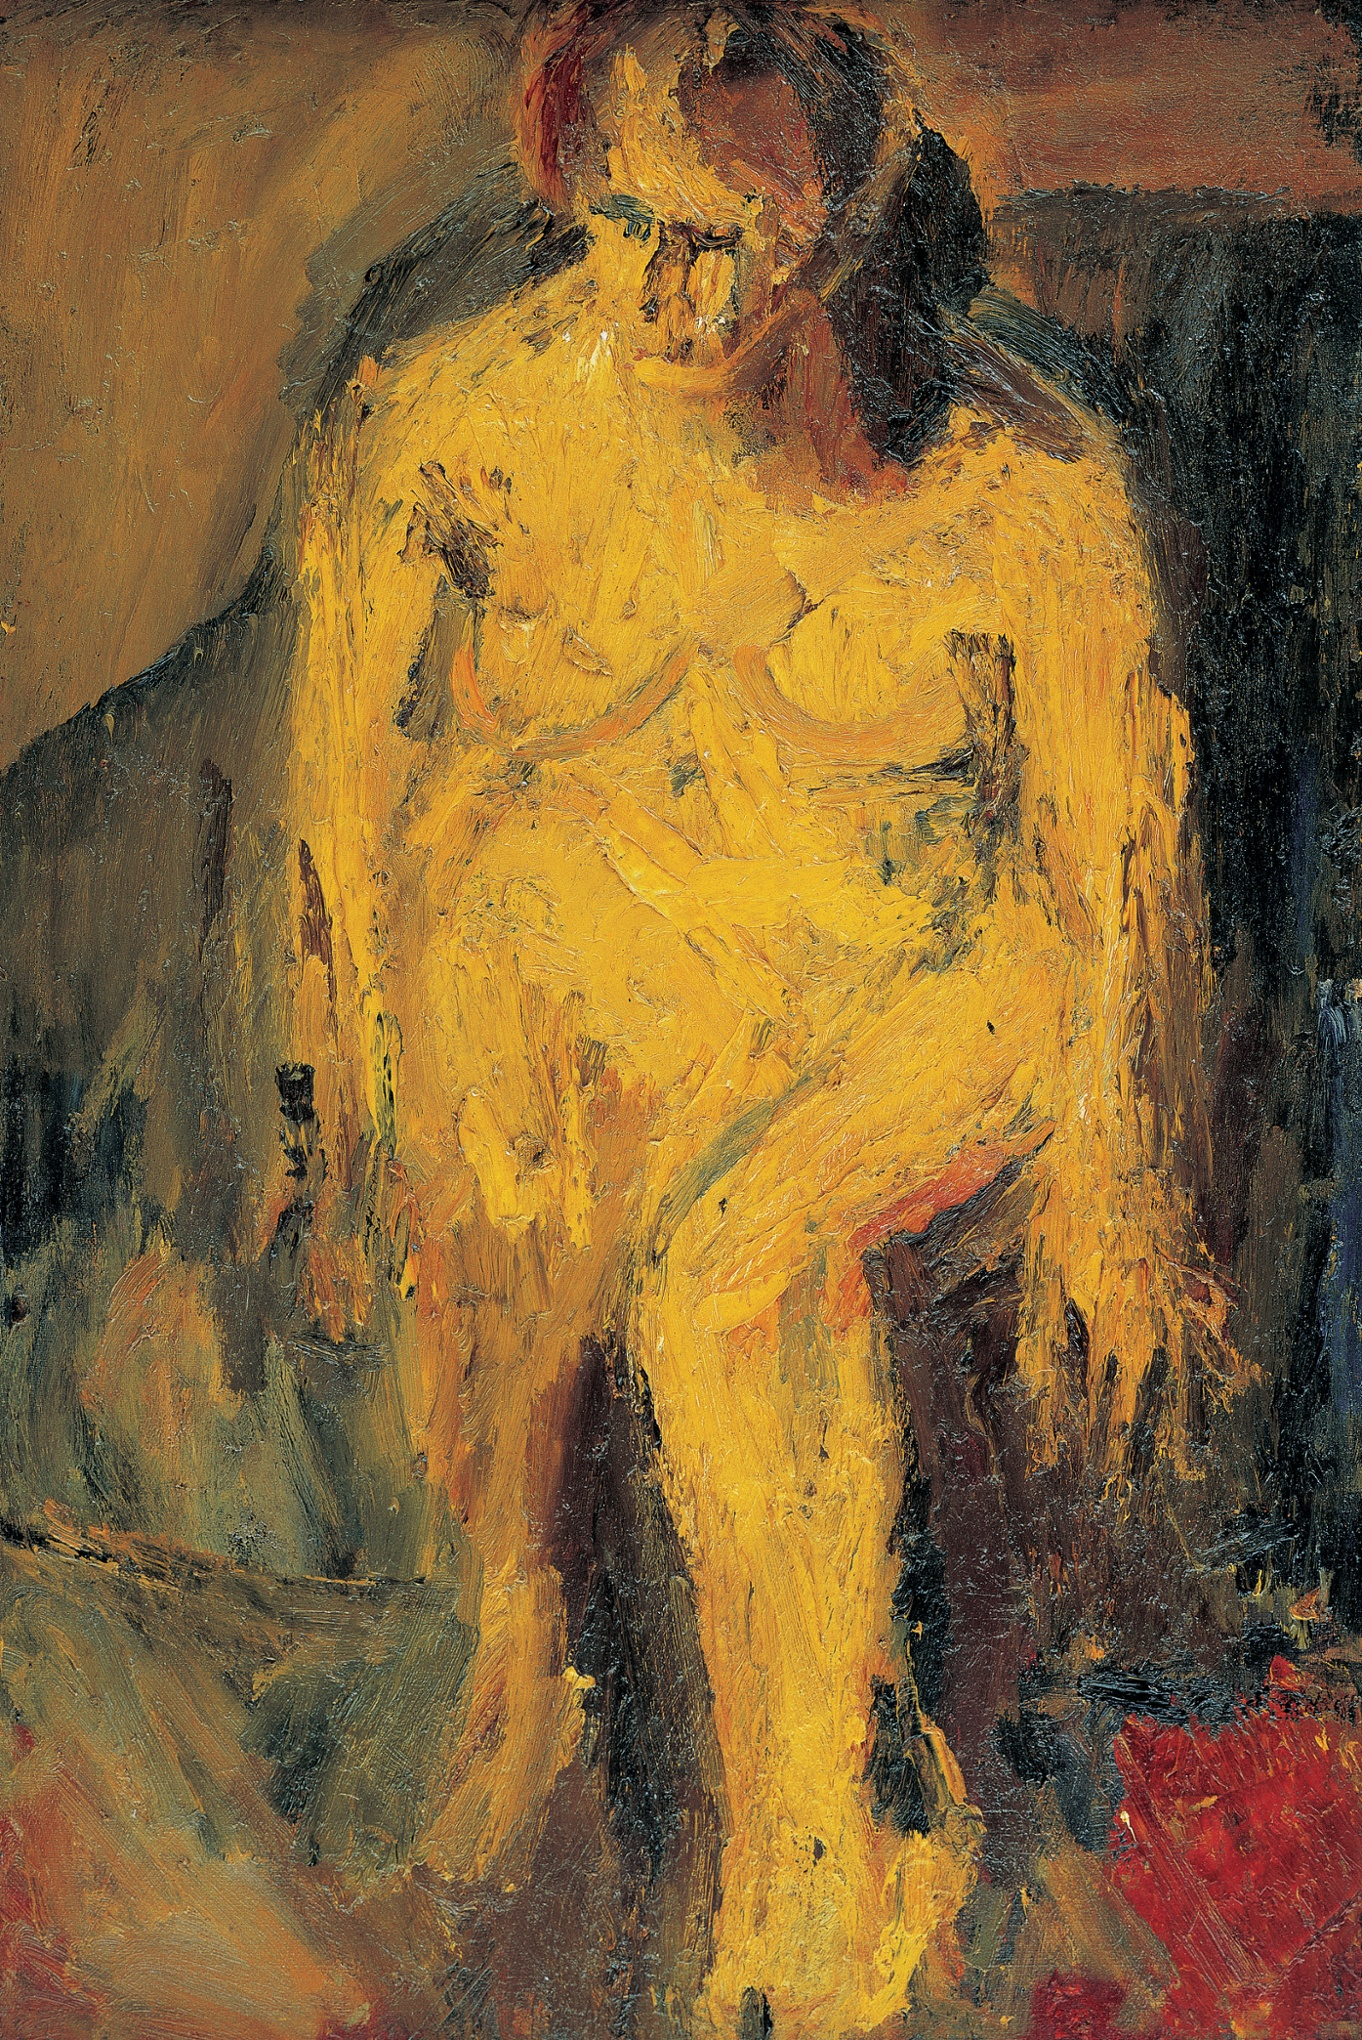 Frank Auerbach, EOW Nude, 1952 (Private Collection)